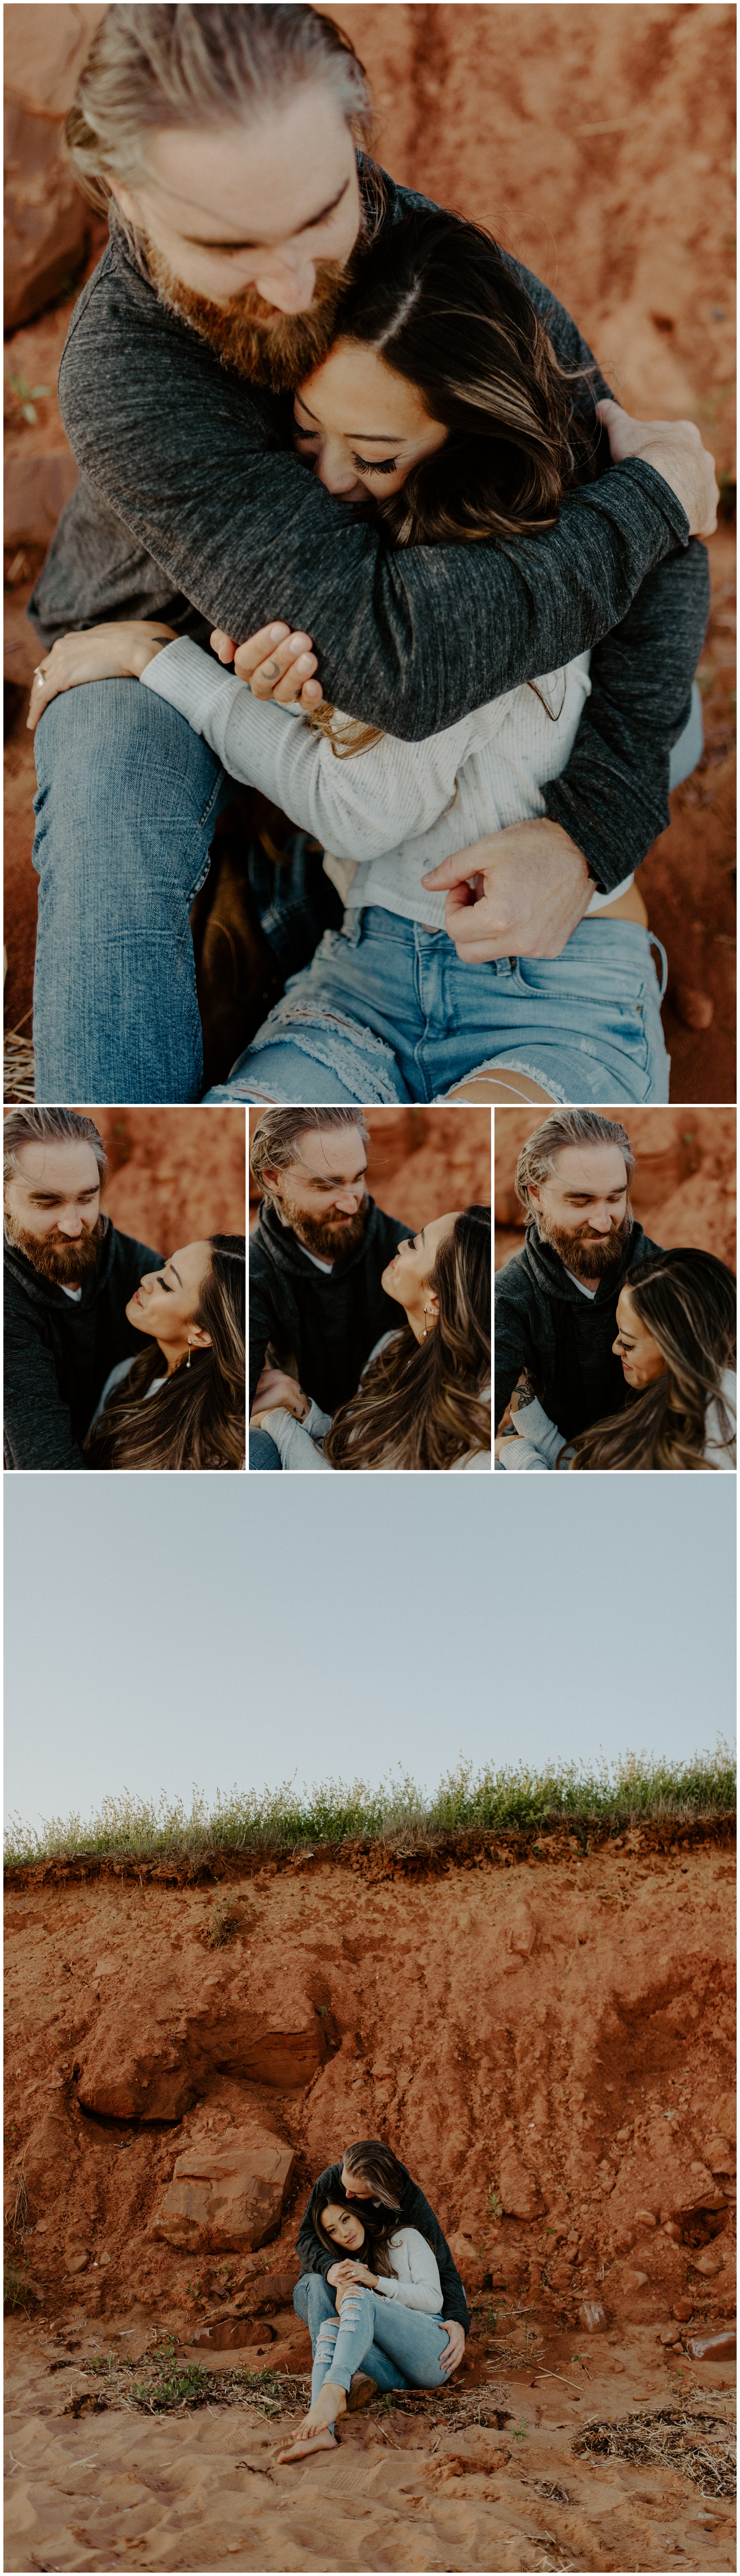 Red Sand Beach Engagements On Prince Edward Island at Sunset | Jessica Heron Images_0012.jpg